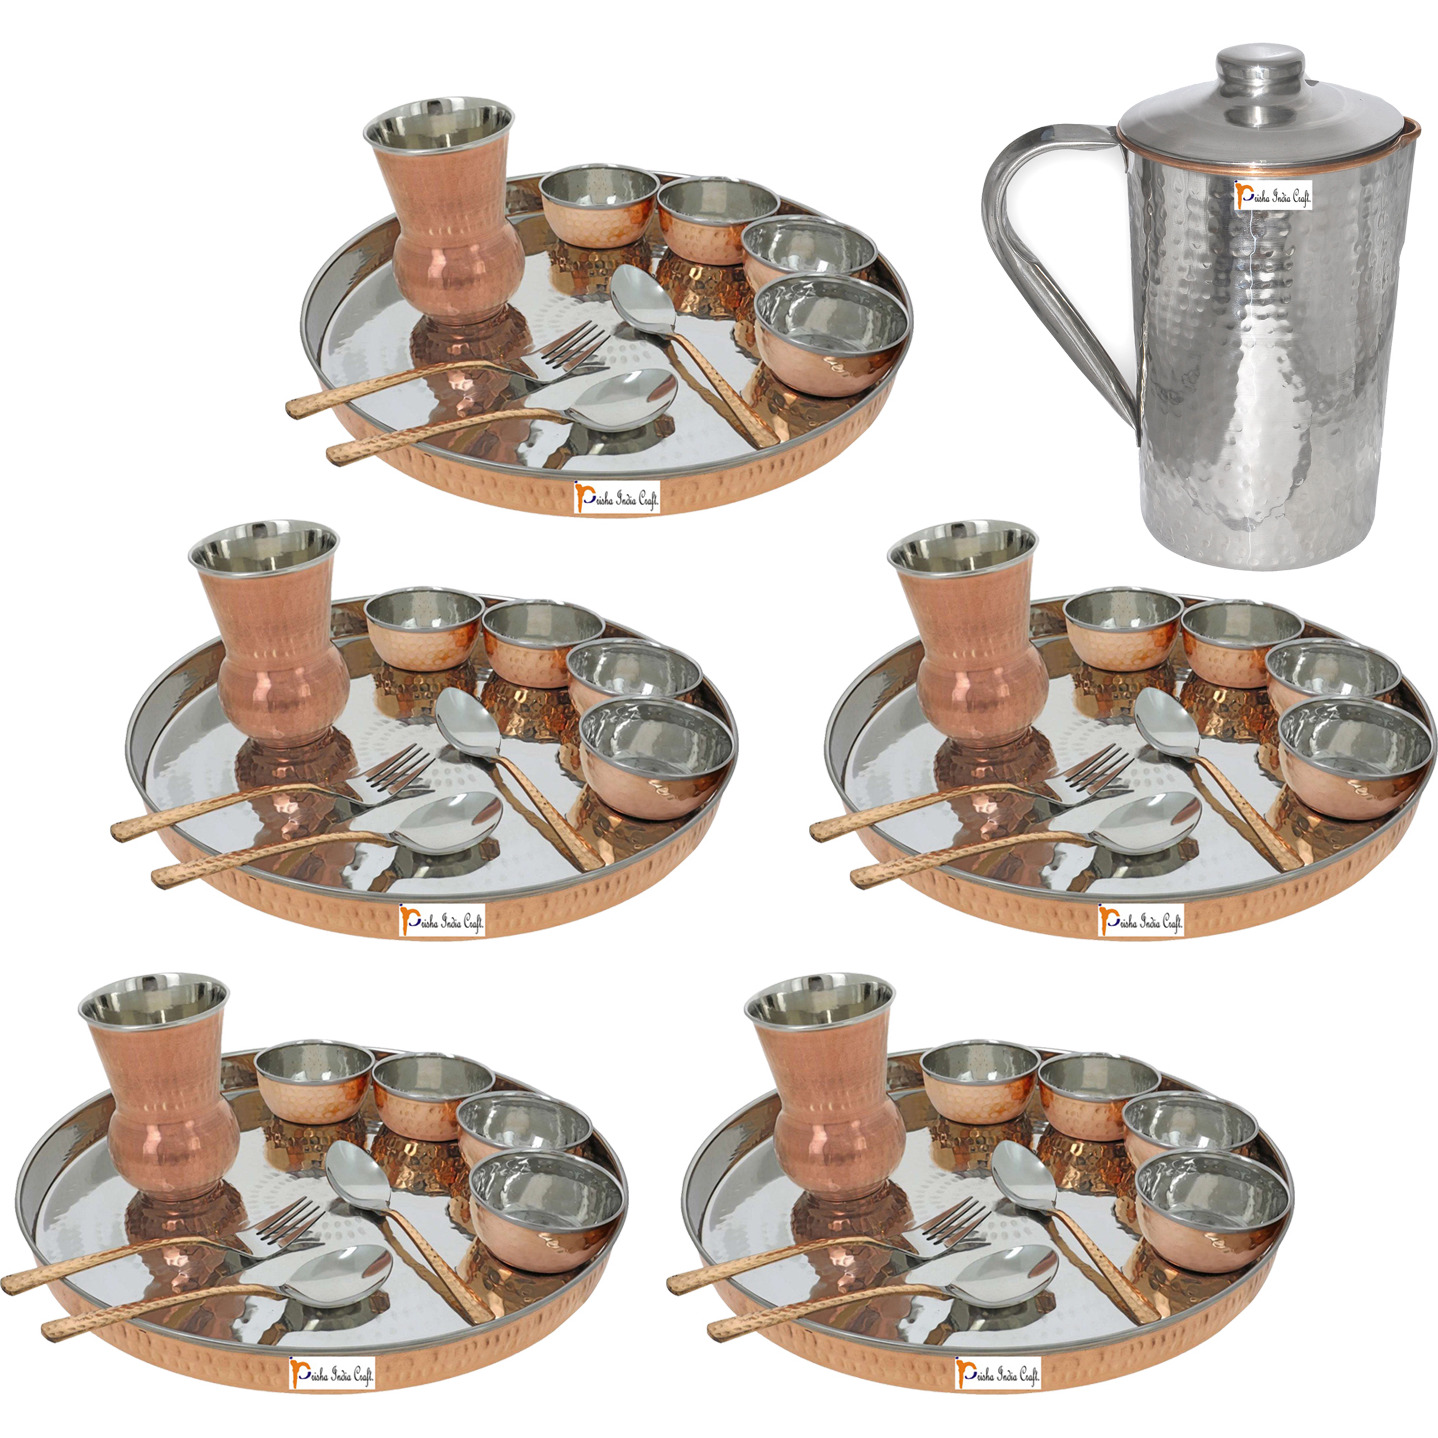 Prisha India Craft B. Set of 5 Dinnerware Traditional Stainless Steel Copper Dinner Set of Thali Plate, Bowls, Glass and Spoons, Dia 13  With 1 Stainless Steel Copper Hammered Pitcher Jug - Christmas Gift